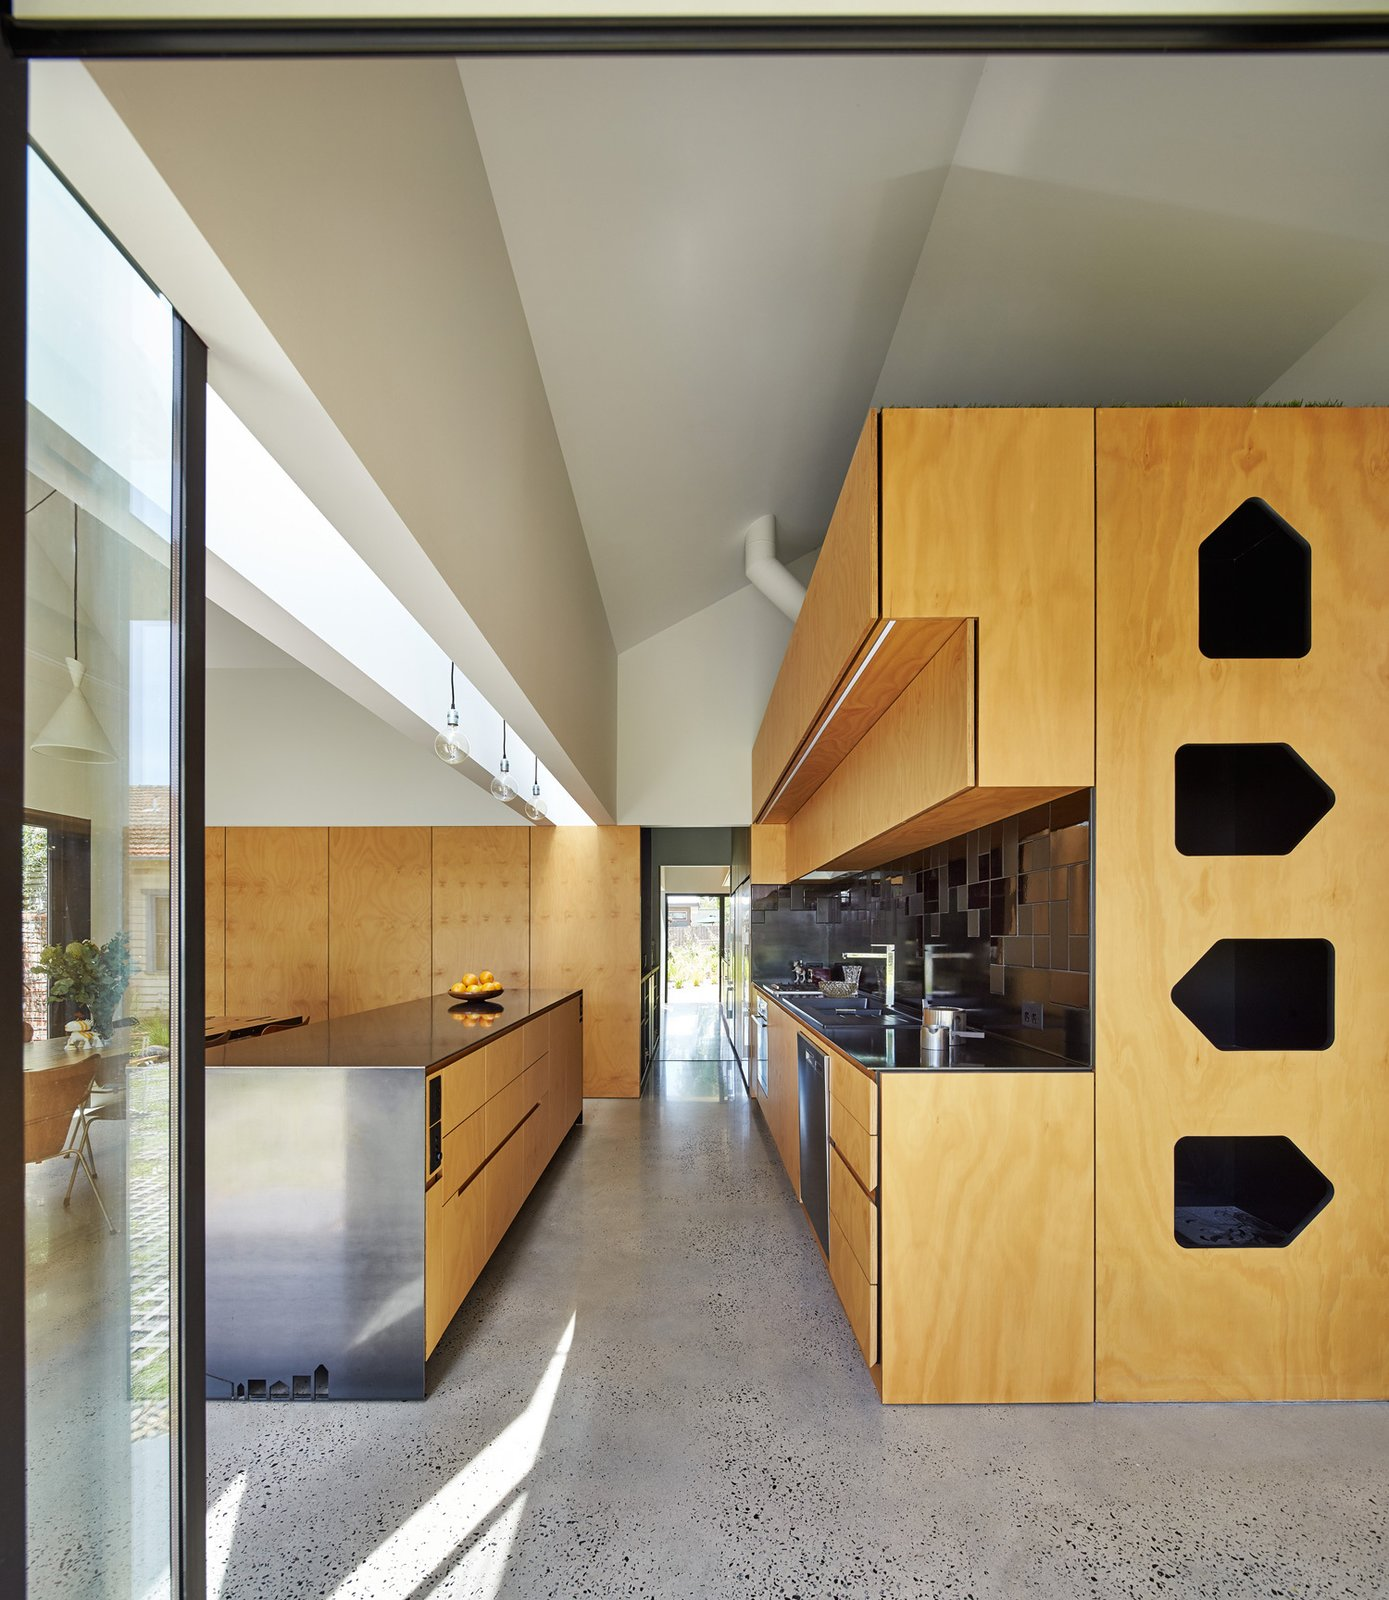 """The house's dominant gable form repeats at a smaller scale throughout the dwelling, as in the kitchen's plywood and steel cabinets. """"The gable became thematic throughout the process,"""" Maynard explains. """"Whenever issues arose, we referred back to it as a default, rather than adding a new idea."""" The sink is by Abey, faucet by Franke, and range by Qasair. Tagged: Kitchen, Wood Cabinet, Concrete Floor, and Metal Counter.  Photo 9 of 12 in This Transformed Melbourne House Resembles a Quirky Village"""